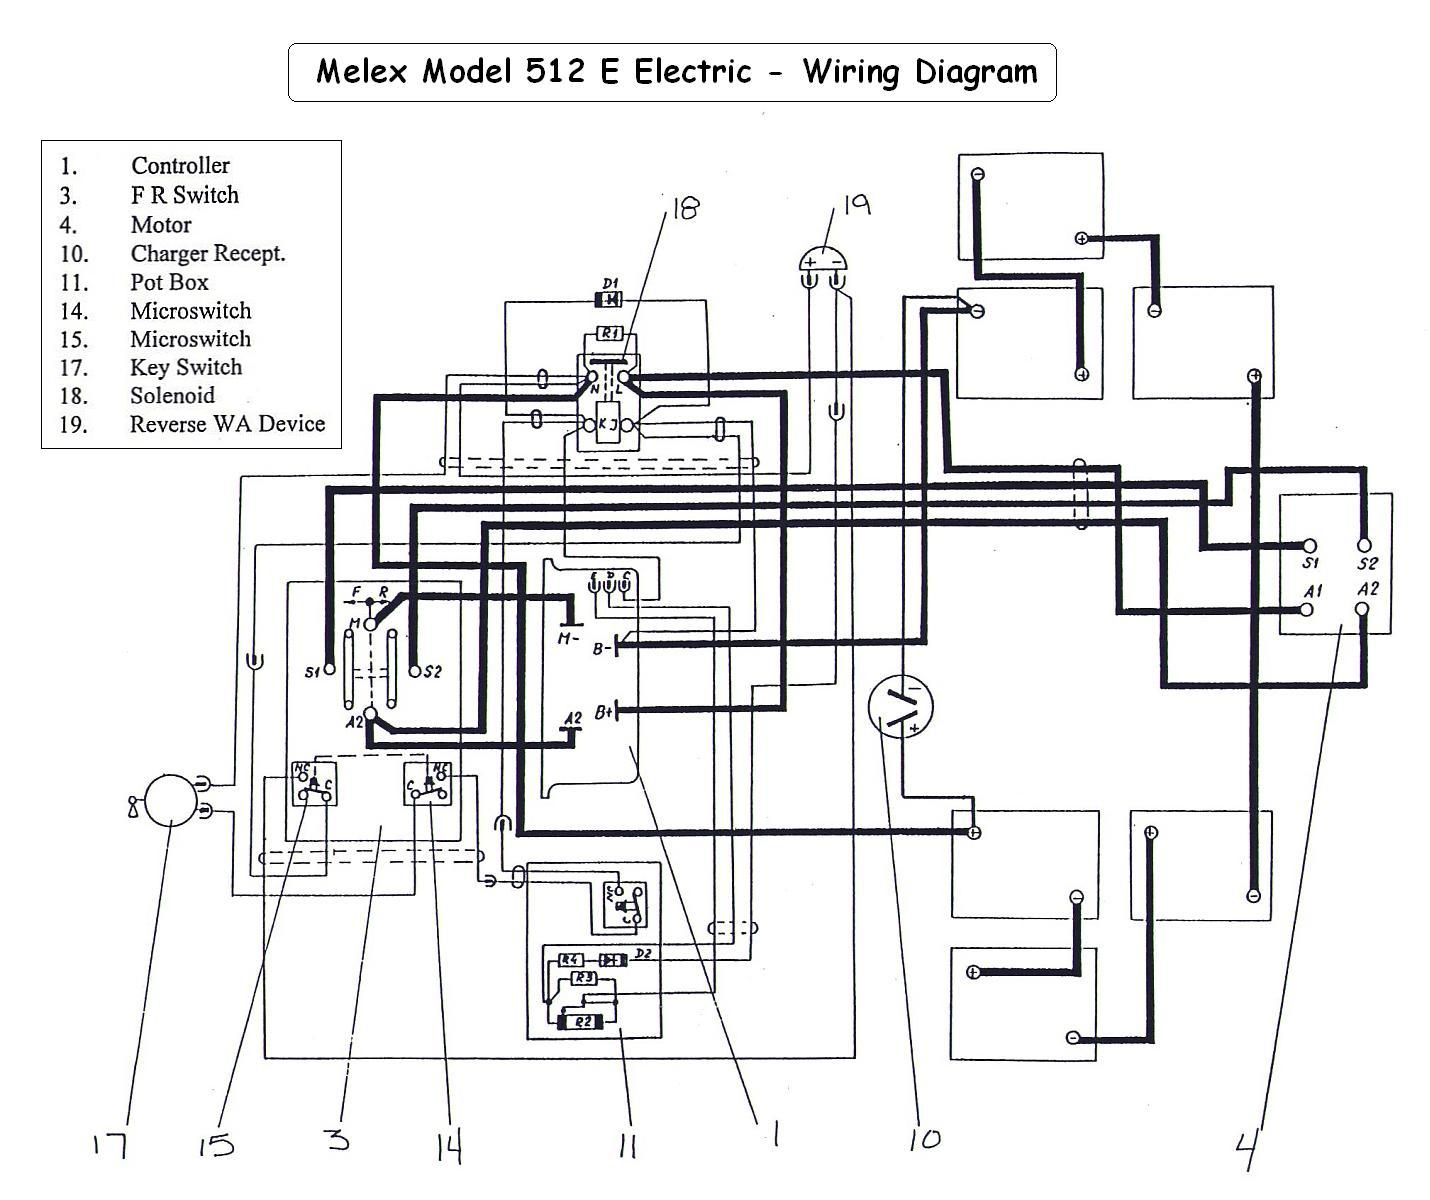 hight resolution of taylor dunn wiring diagram wiring diagrams taylor dunn 36 volt wiring diagram 36 volt taylor dunn wiring diagram